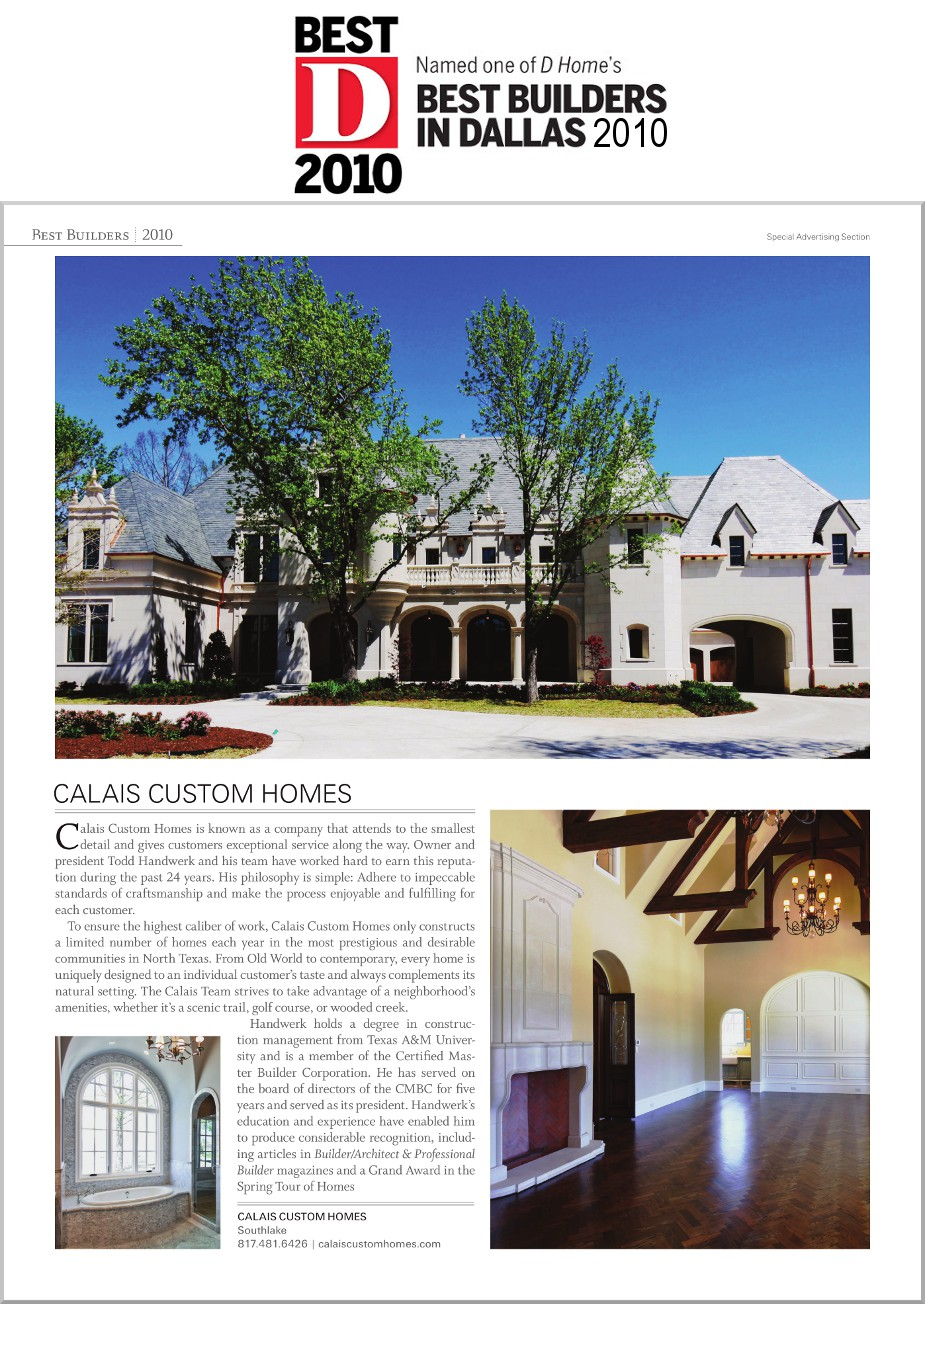 2010 DHome Best Builder Award Article